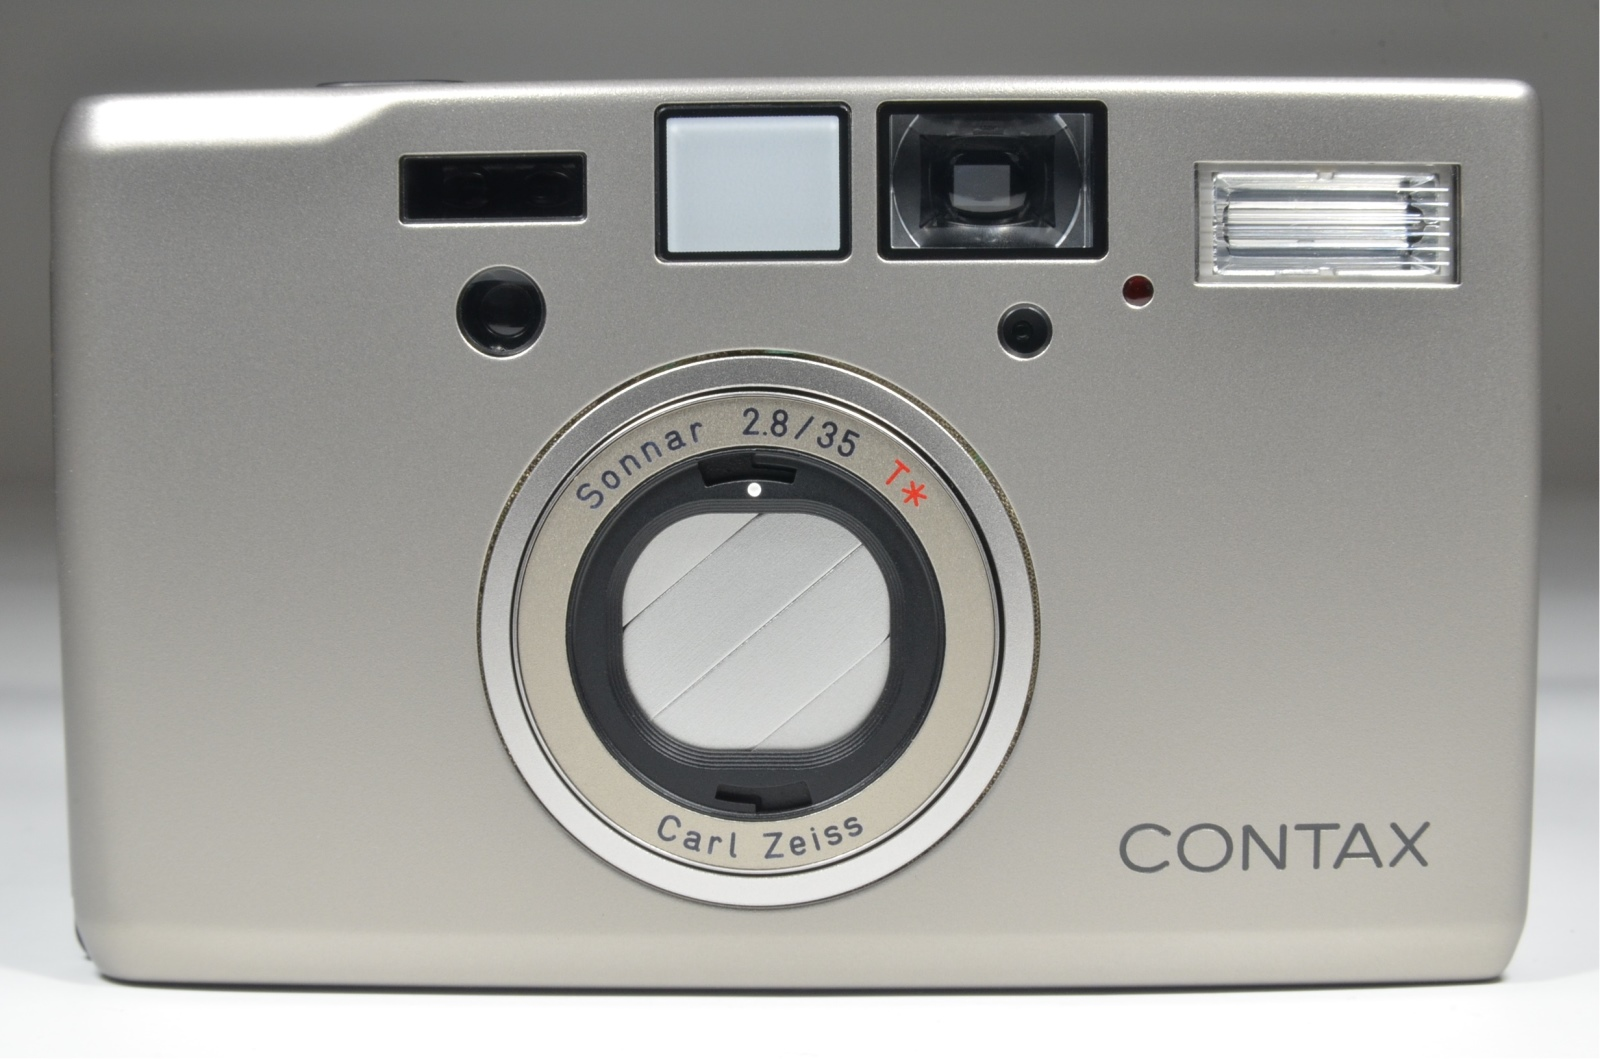 contax t3 data back p&s 35mm film camera with full leather case